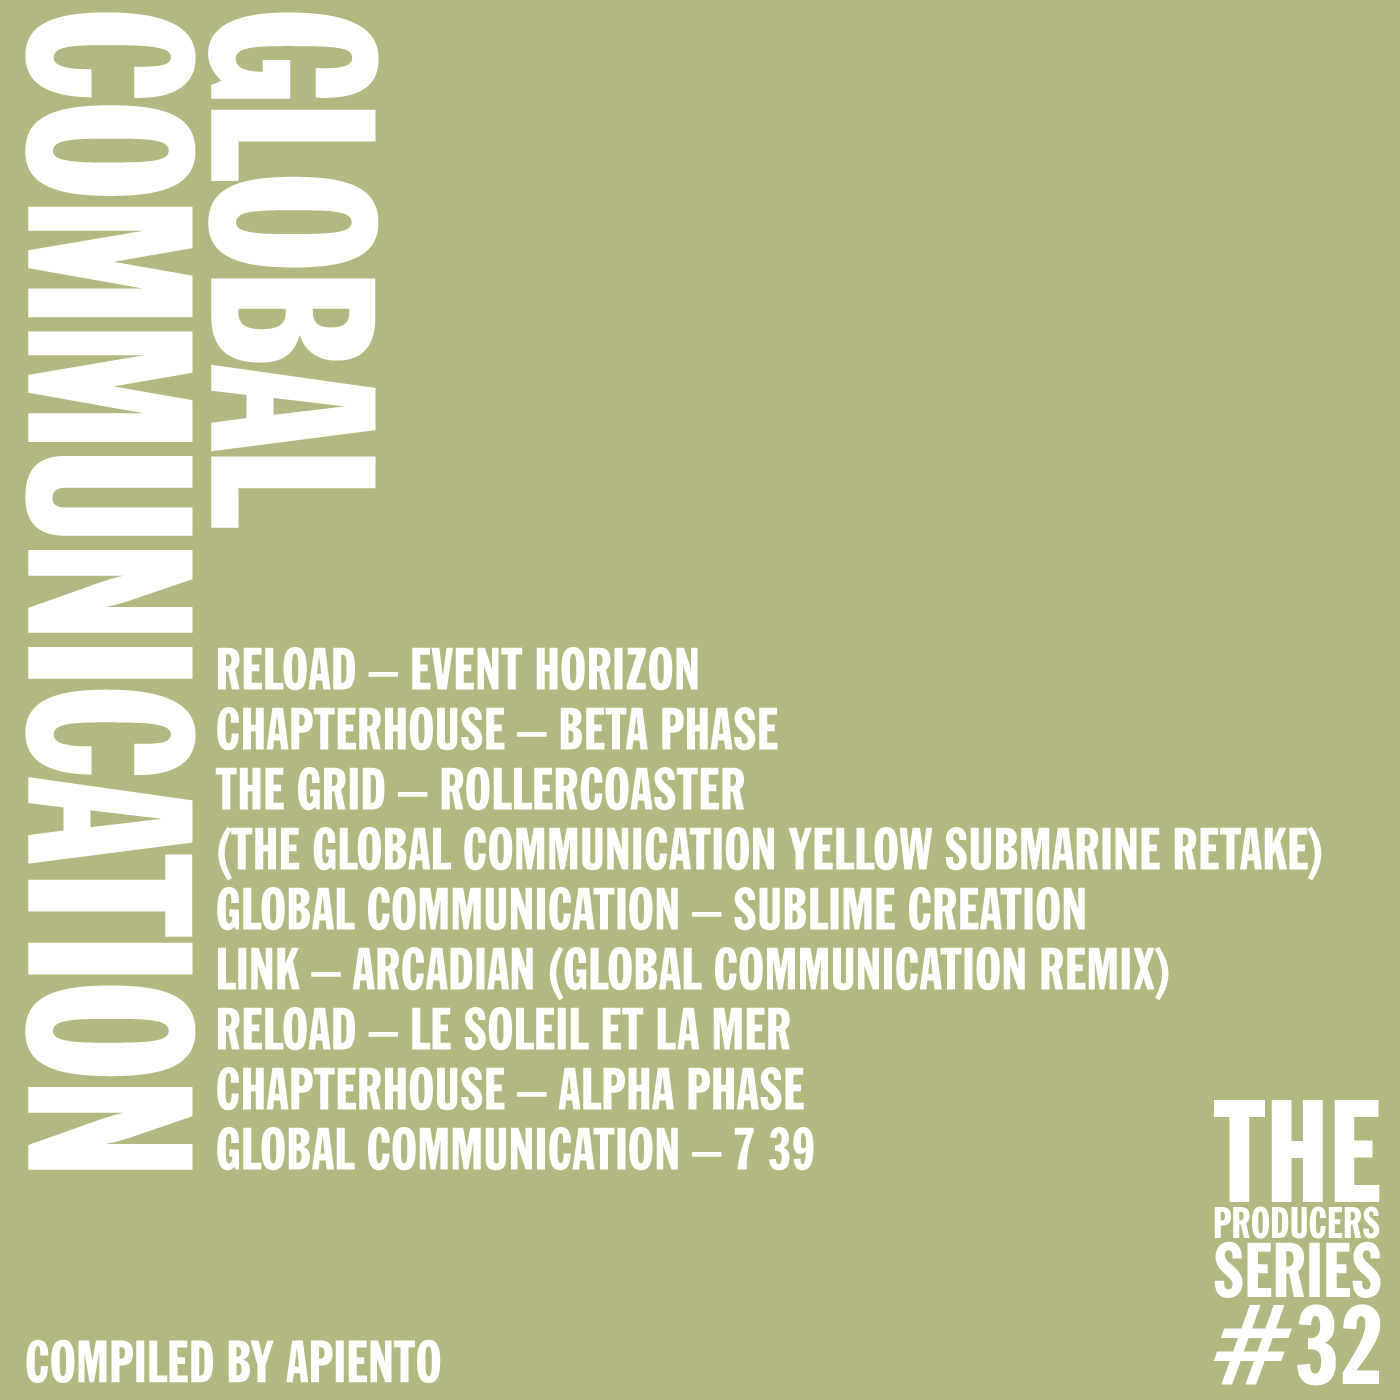 Test Pressing, 76:14, Producers Series, Global Communications, Reload, Mark Pritchard, Tom MIddleton, Gearslutz, Q&A, Amazing, Somerset, Making Music, Gear list,